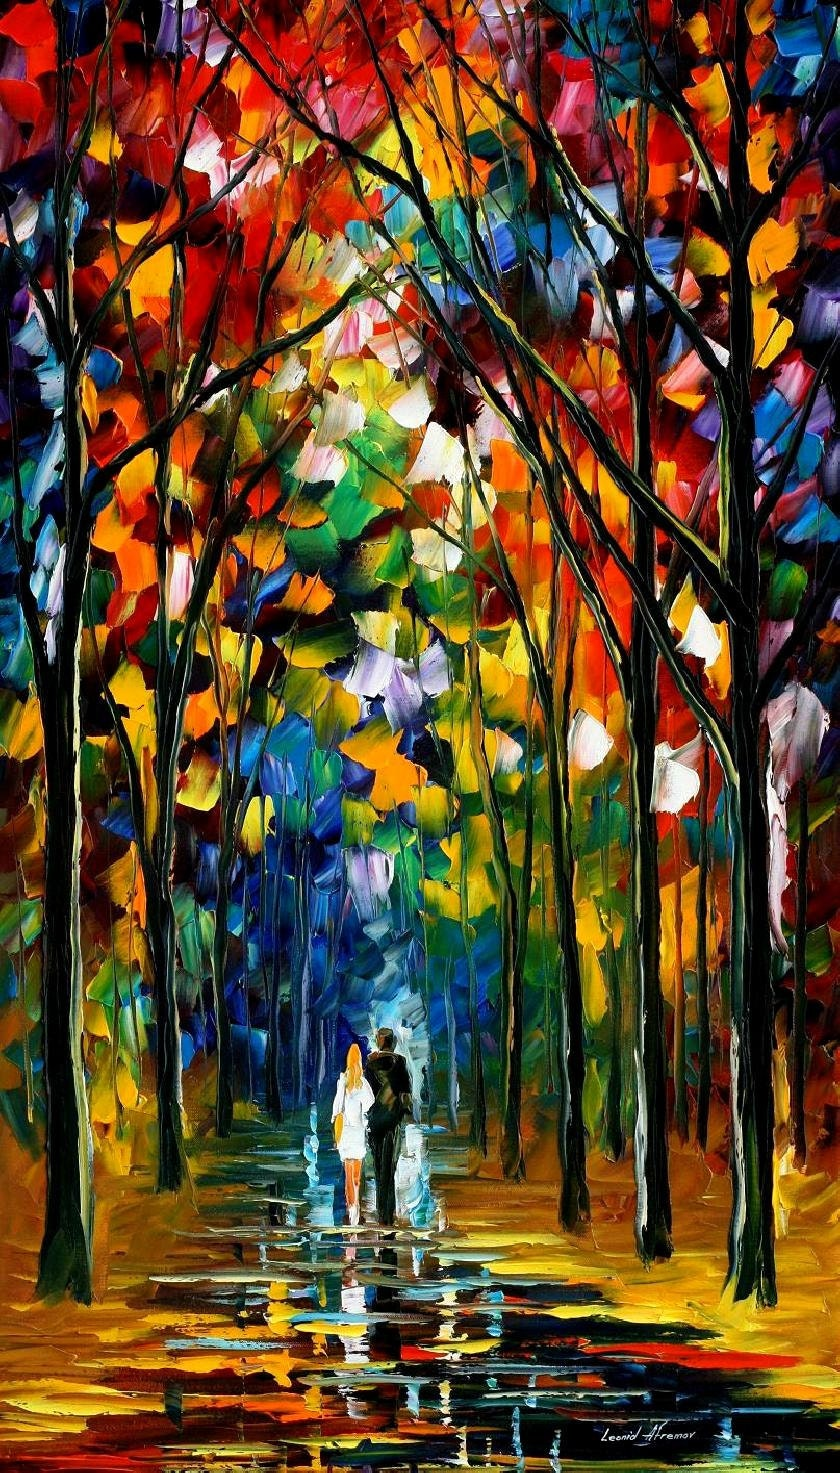 Cheap paintings for sale great wall art by leonid afremov for Cheap canvas paintings for sale